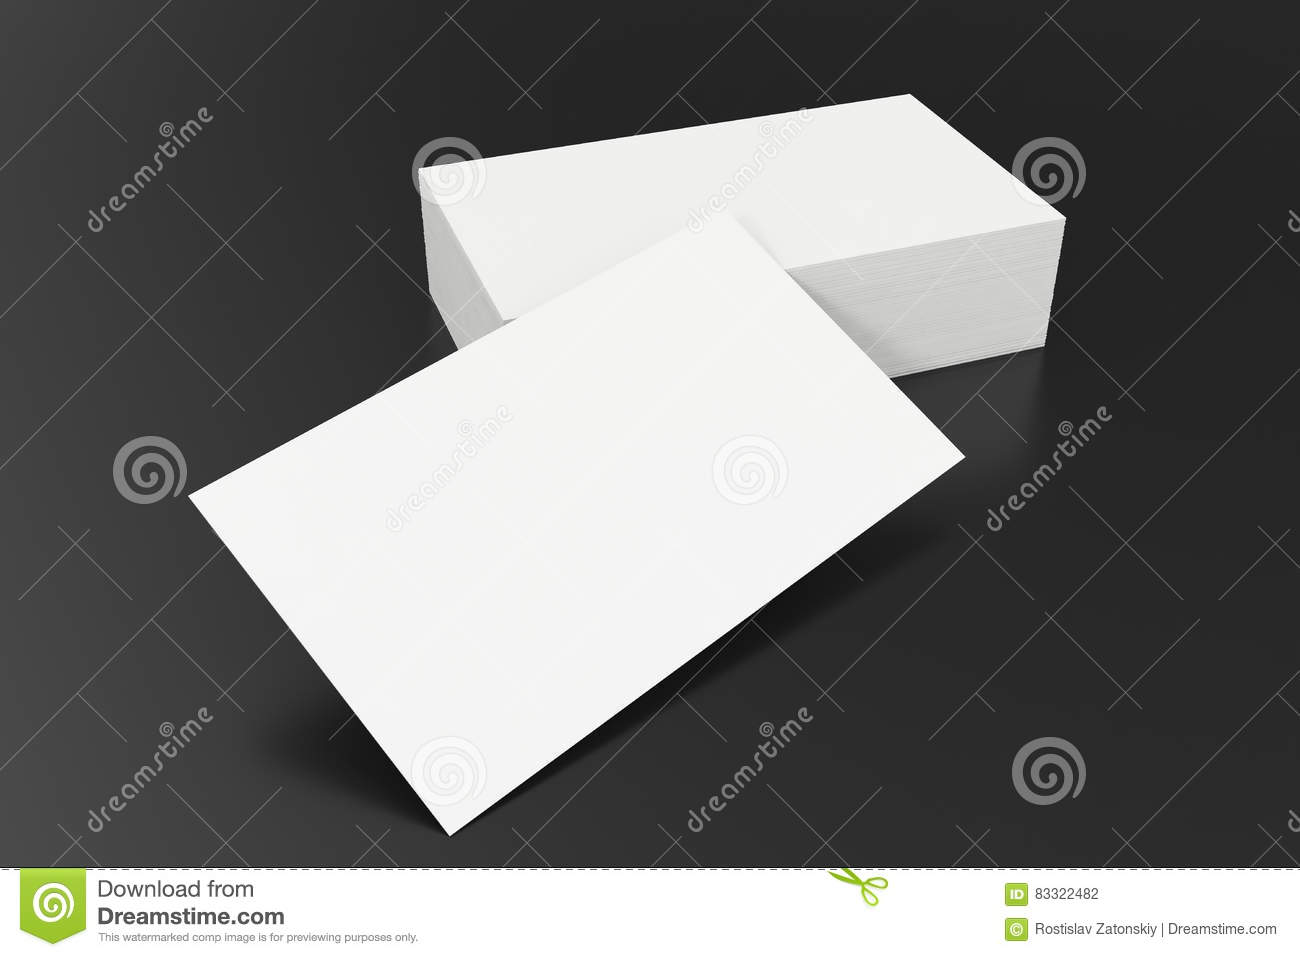 Business cards blank mockup template on balck background 3d download business cards blank mockup template on balck background 3d rendering stock photo accmission Choice Image